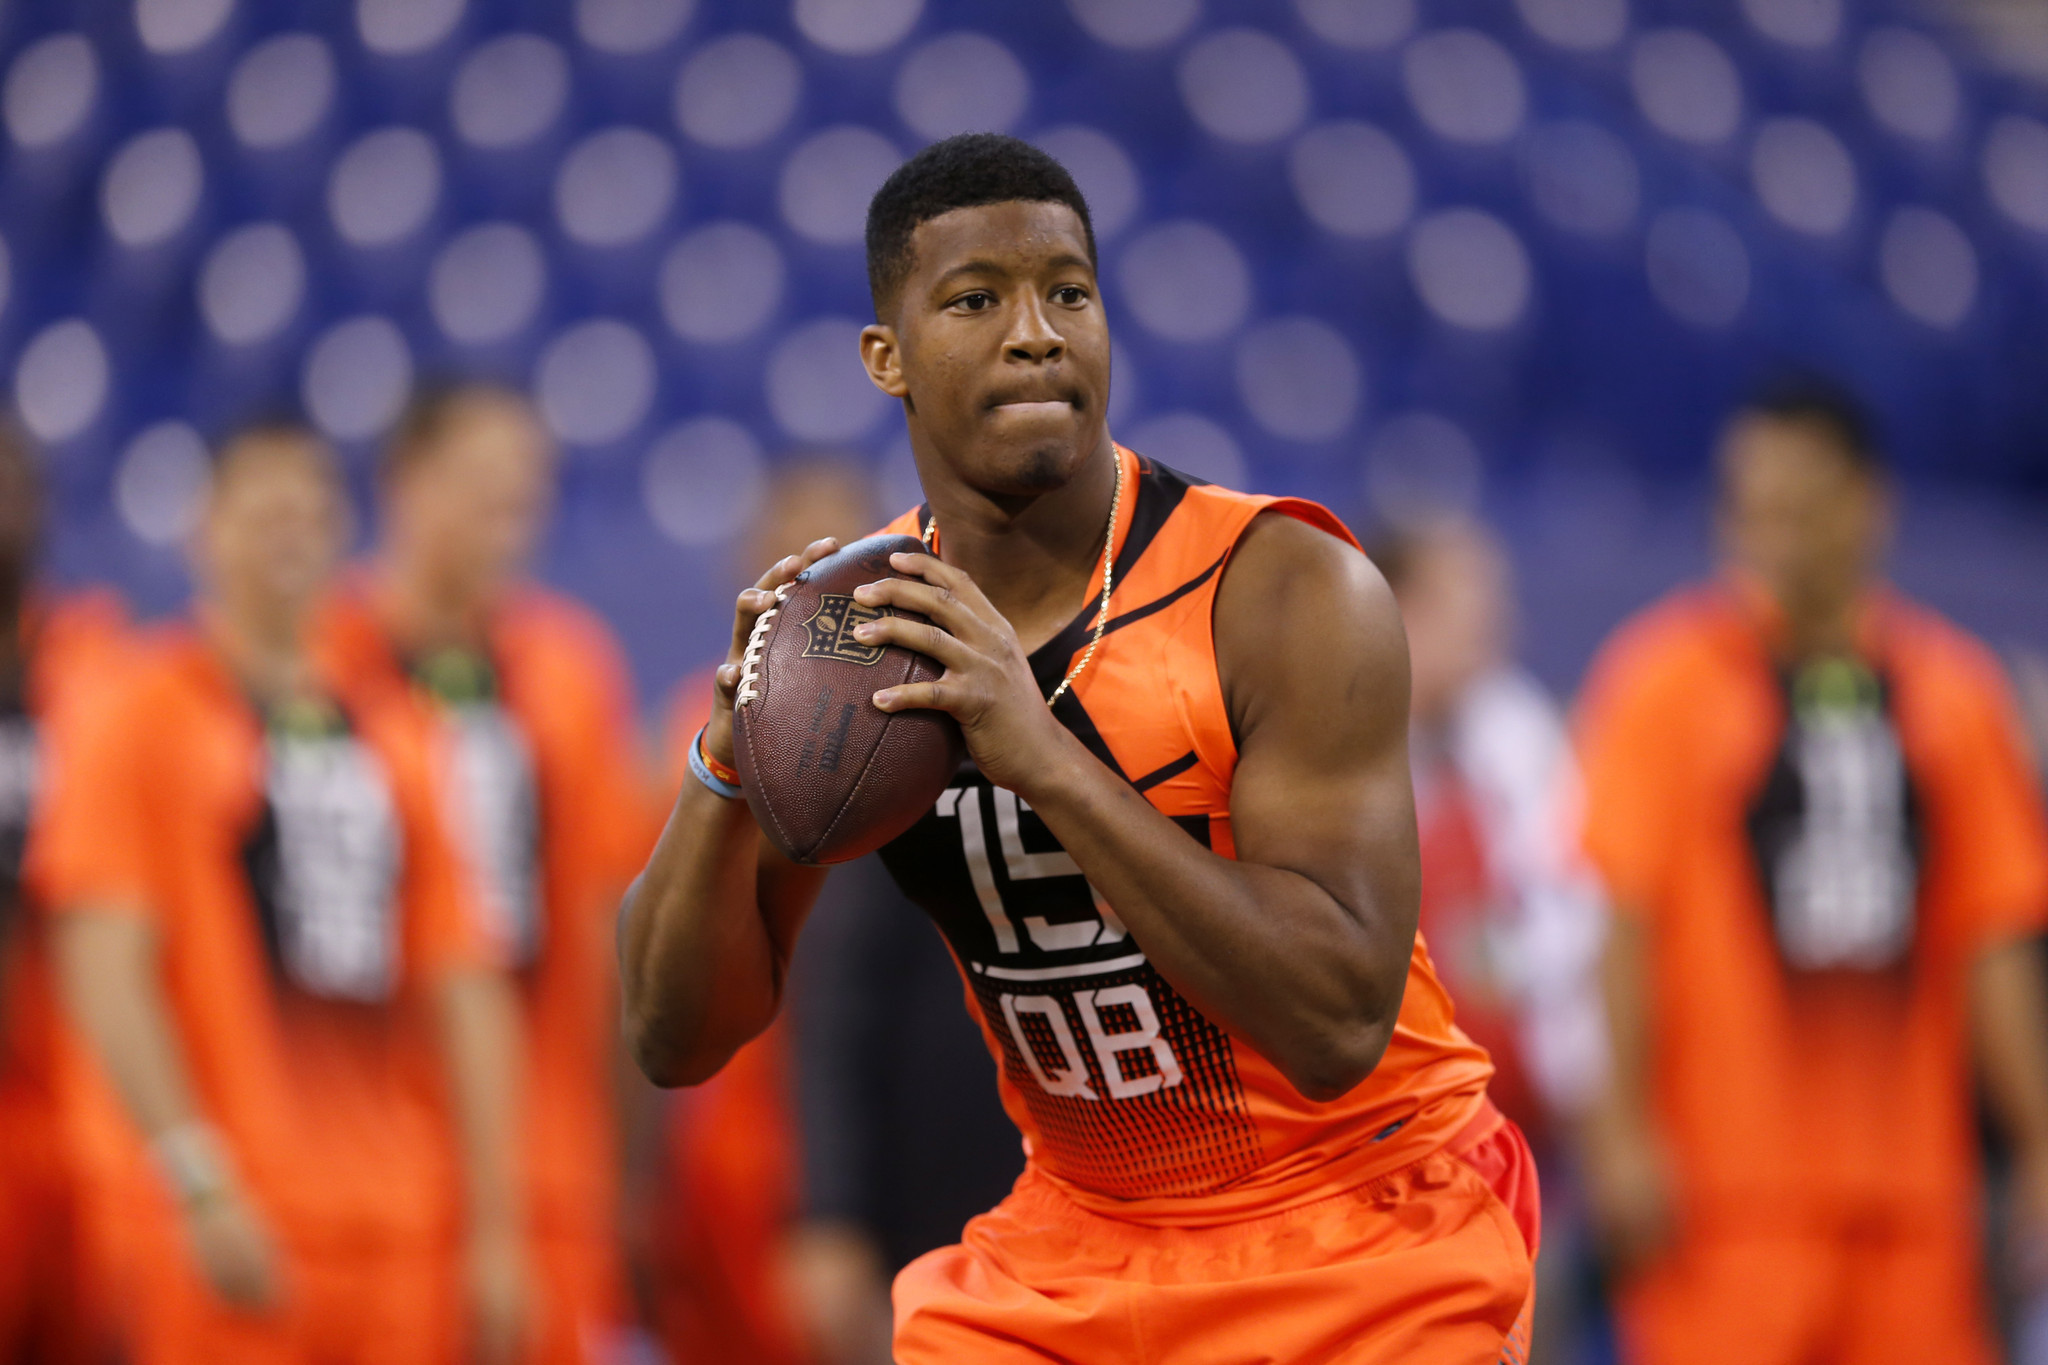 Jameis Winston battles to change public perception earn No 1